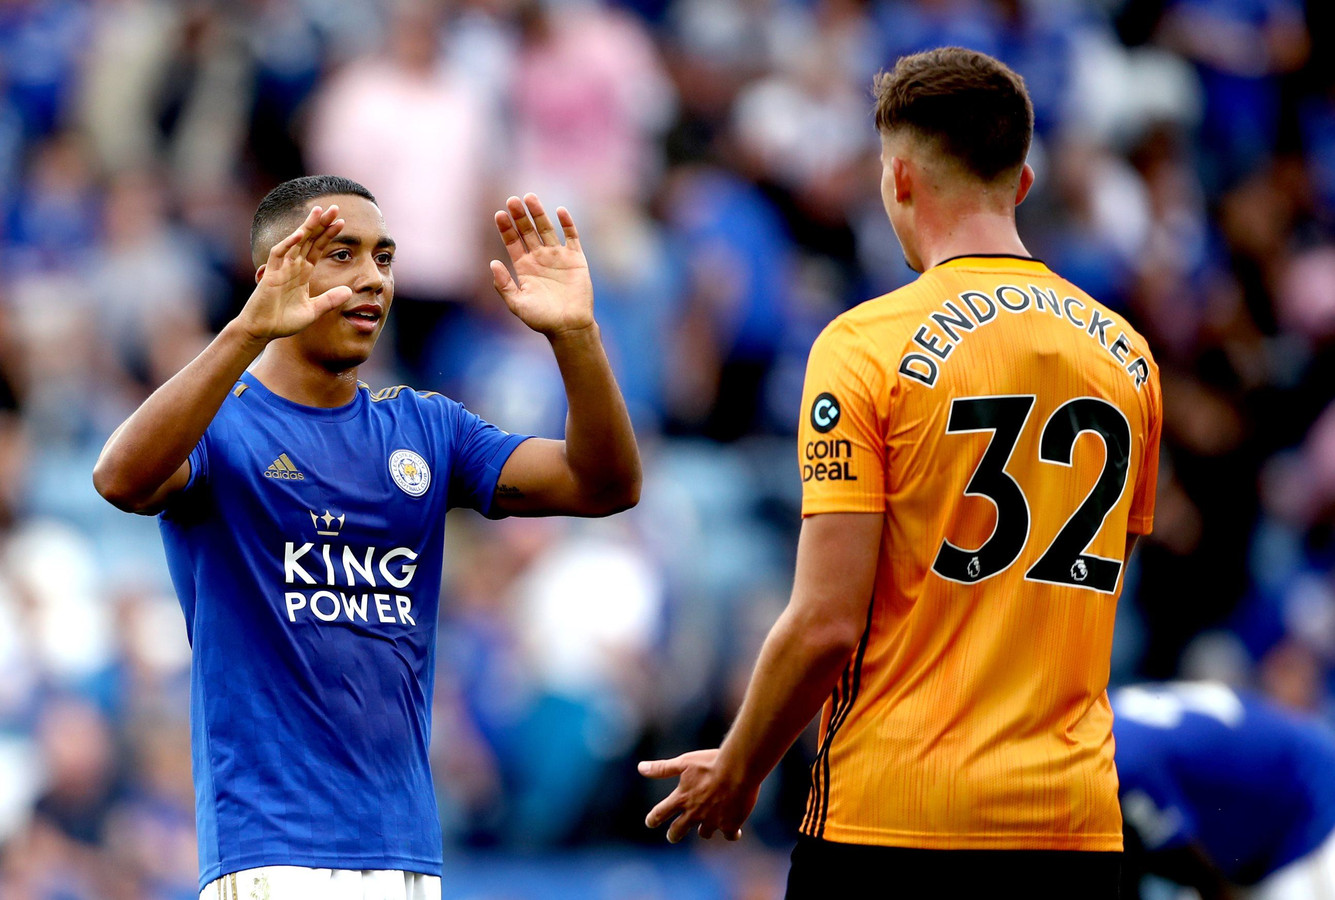 Leicester City's Youri Tielemans (left) interacts with Wolverhampton Wanderers's Leander Dendoncker at the end of the Premier League match at the King Power Stadium, Leicester. ! only BELGIUM !